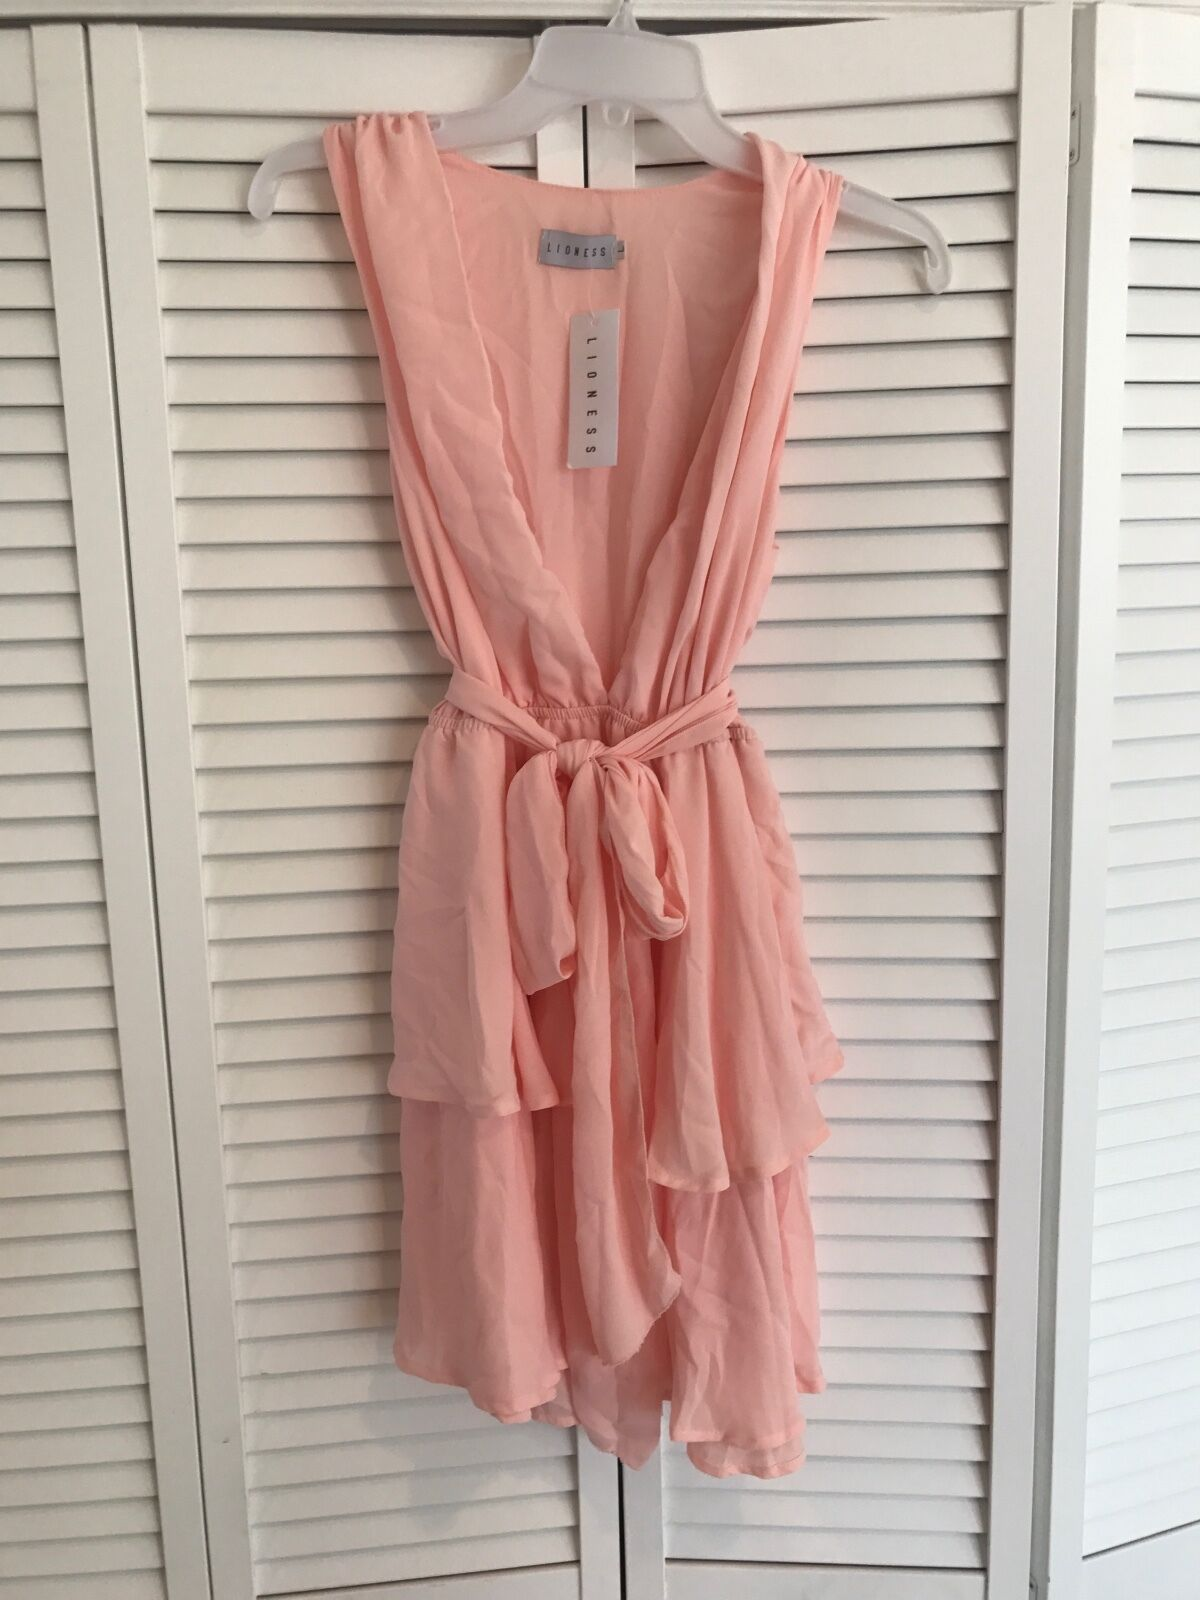 Lioness Fashion Large pink Pink Low Cut Ruffle Dress NEW with tags